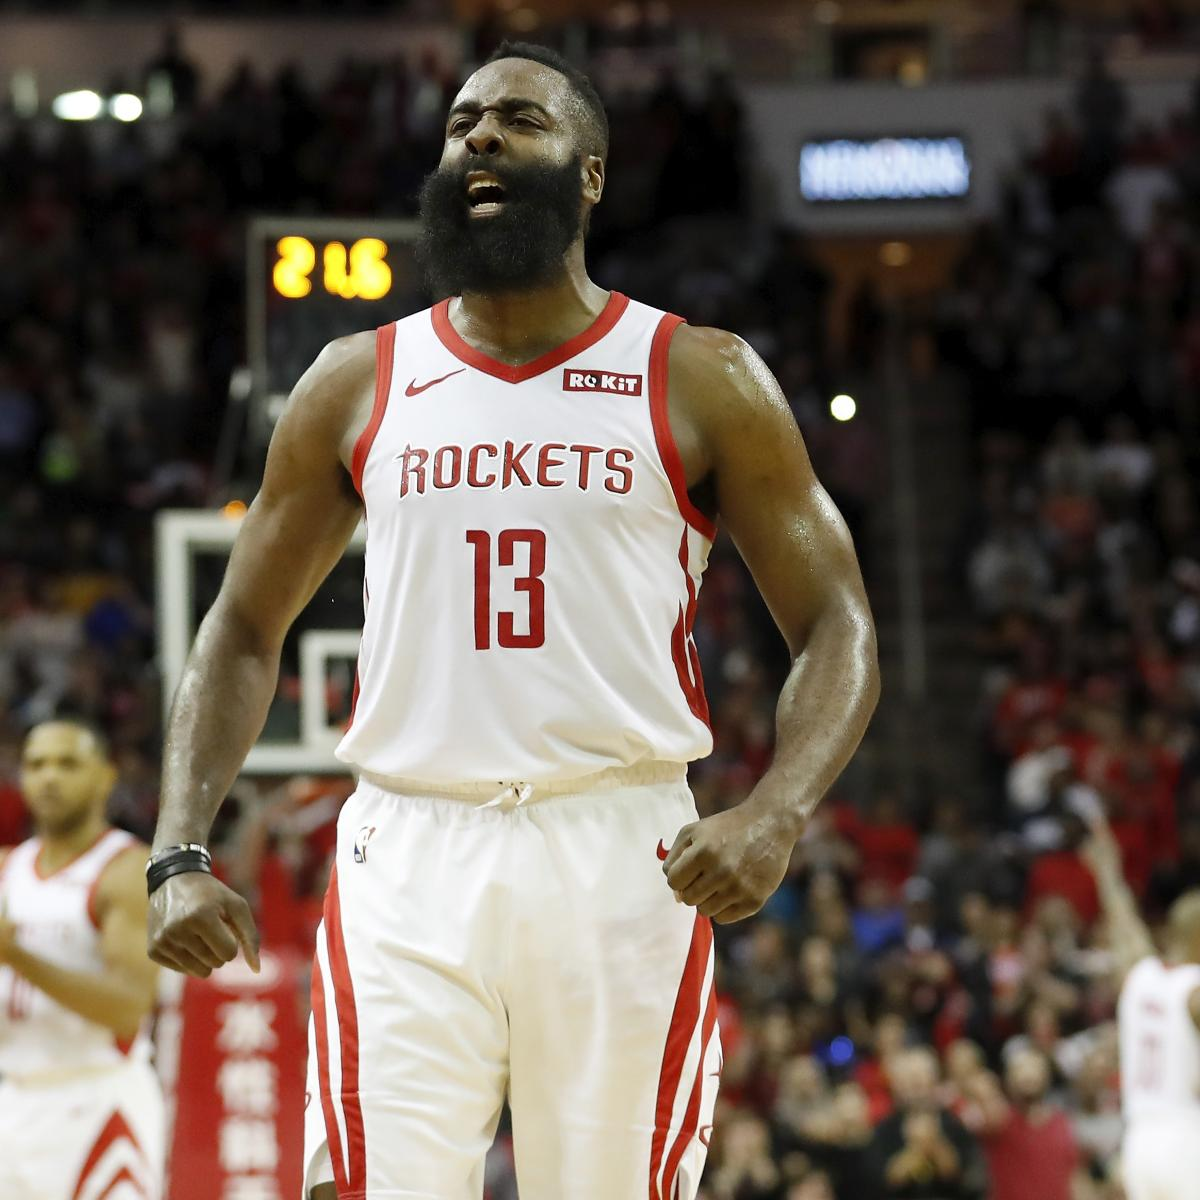 James Harden Latest News: Watch Highlights Of Rockets' James Harden Shredding The